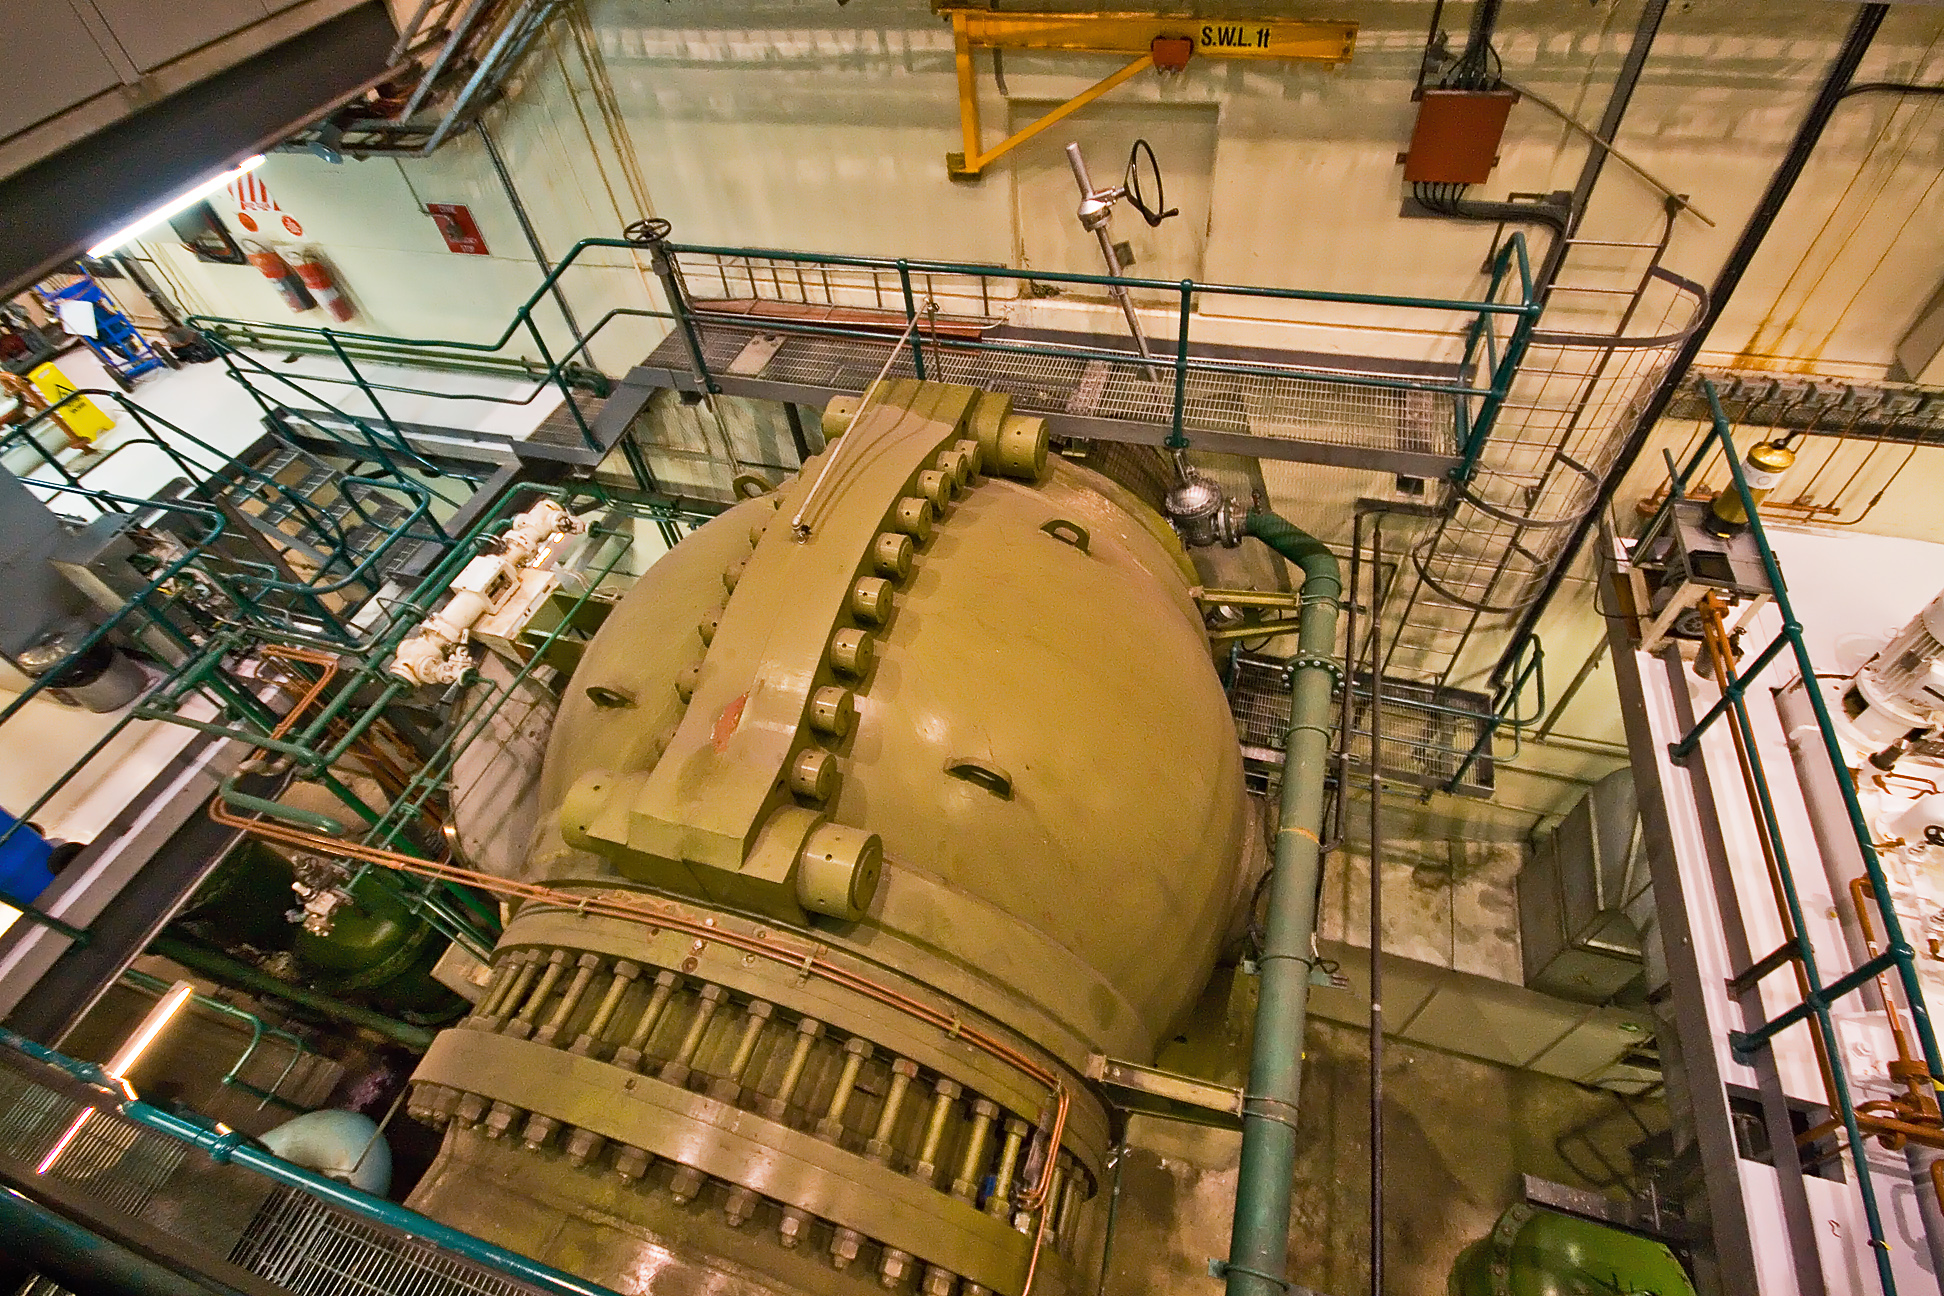 gordon power station control valve.jpg